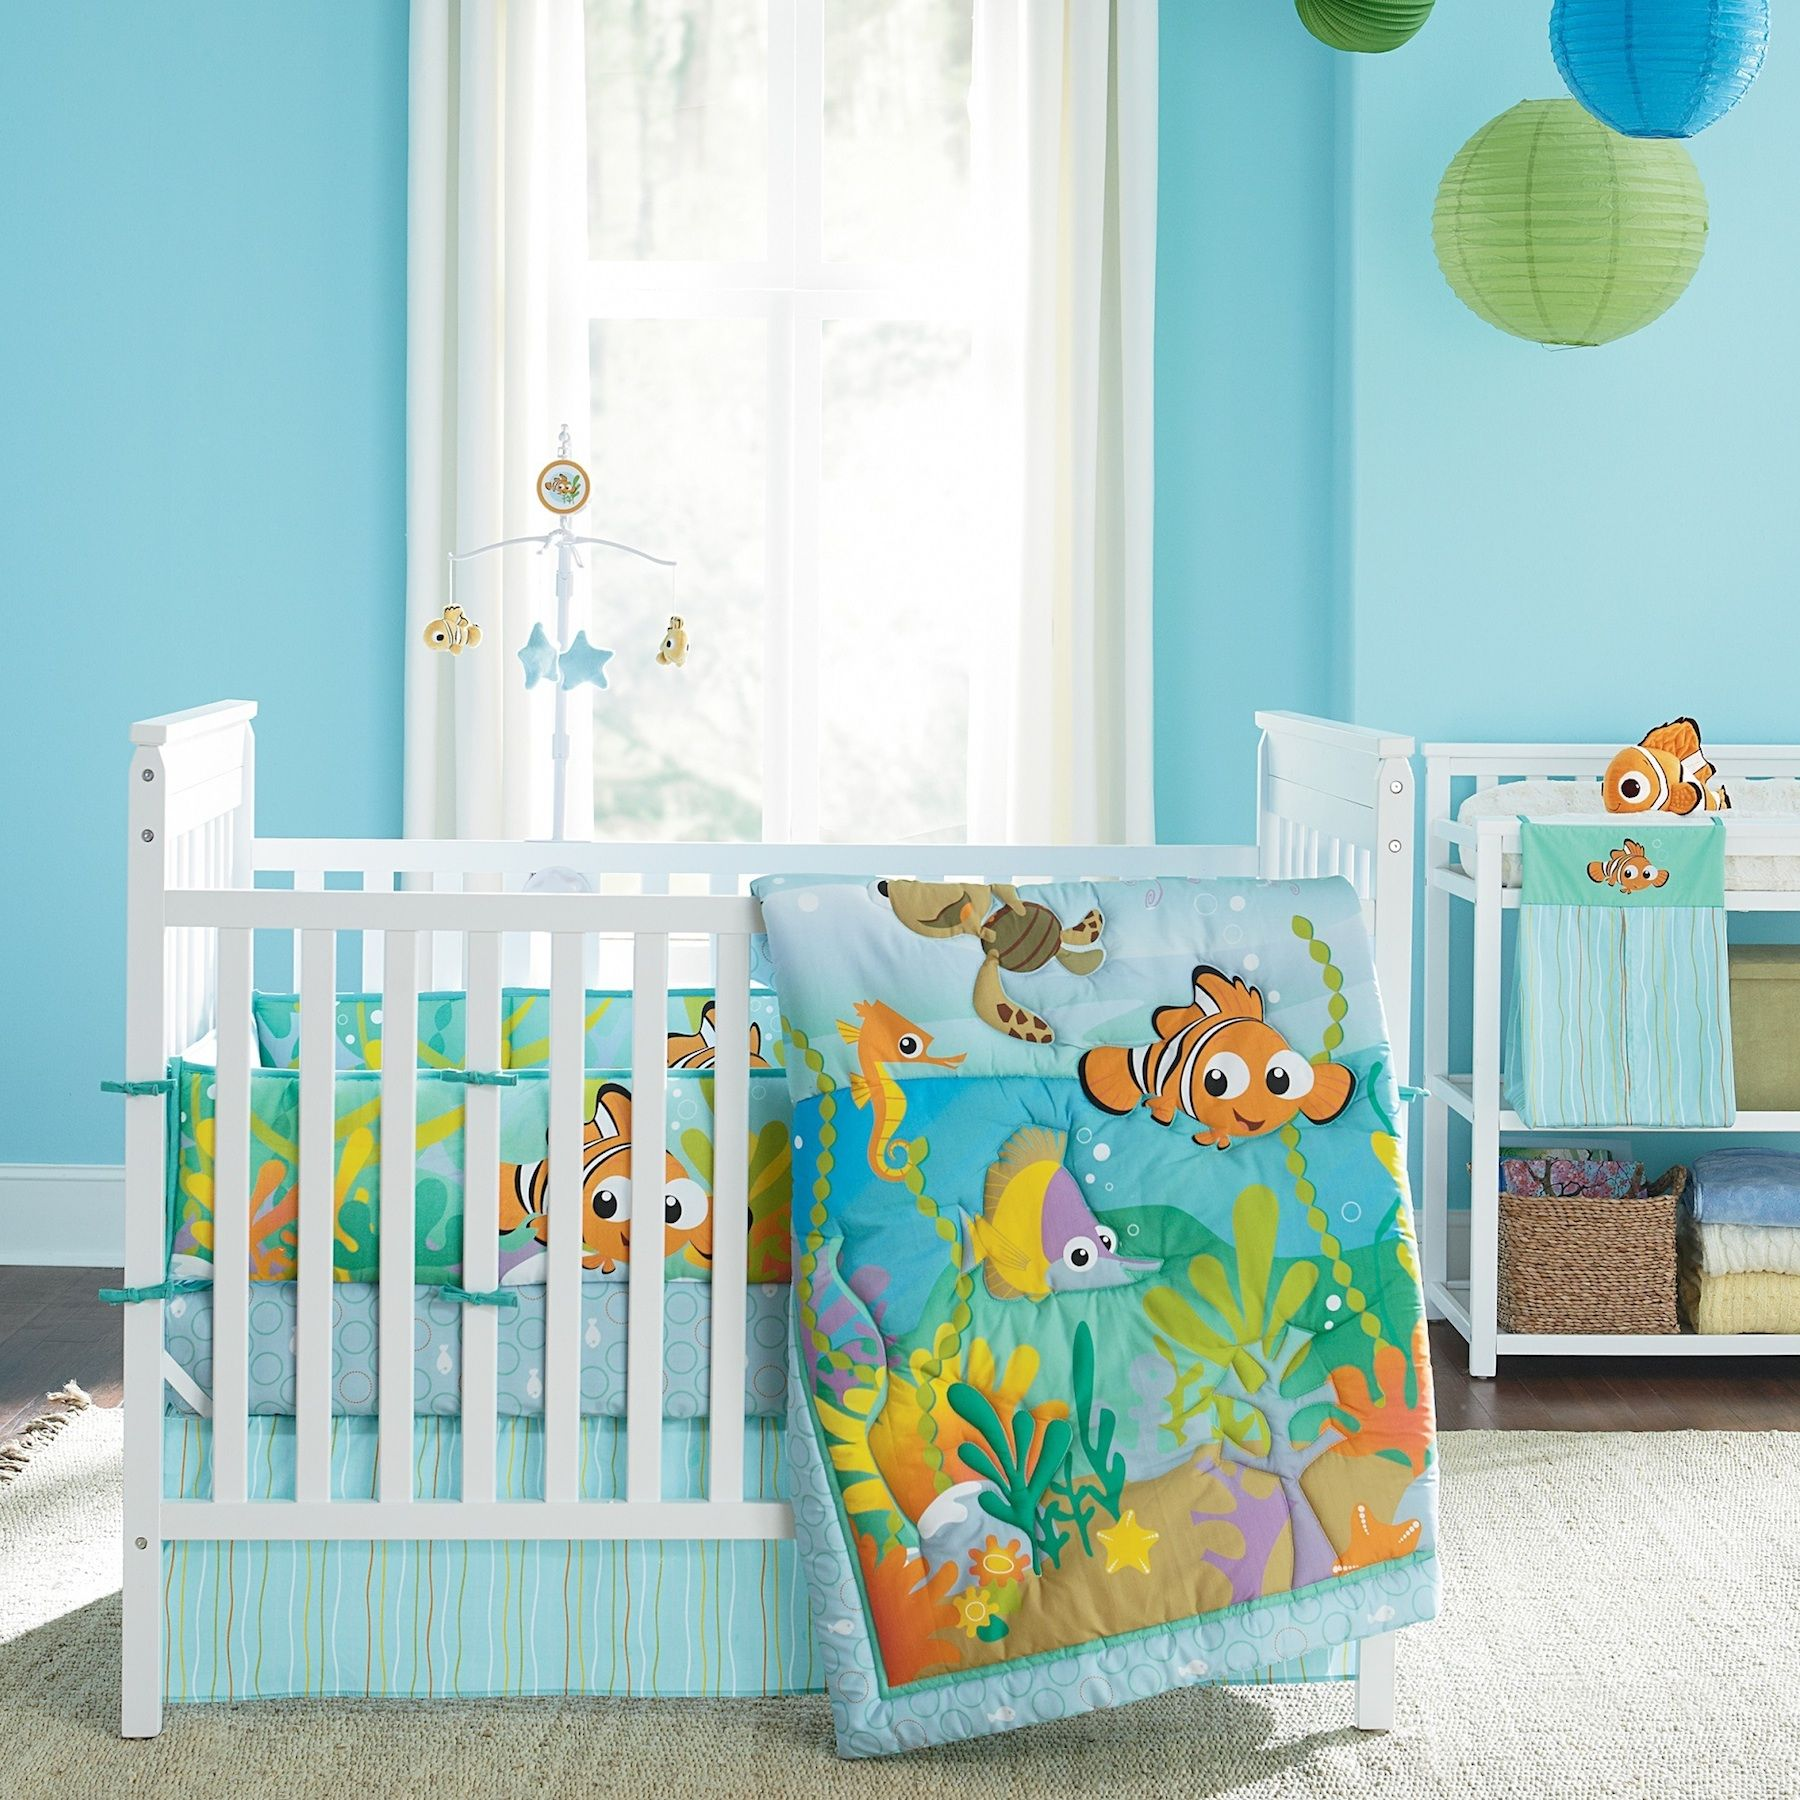 Baby cribs green - Baby Nursery Celebrities Baby Nursery Room You Can Get Inspired From Baby Nursery Celebrity Design With White Wooden Baby Crib Blue Wall Painted Nemo Cute